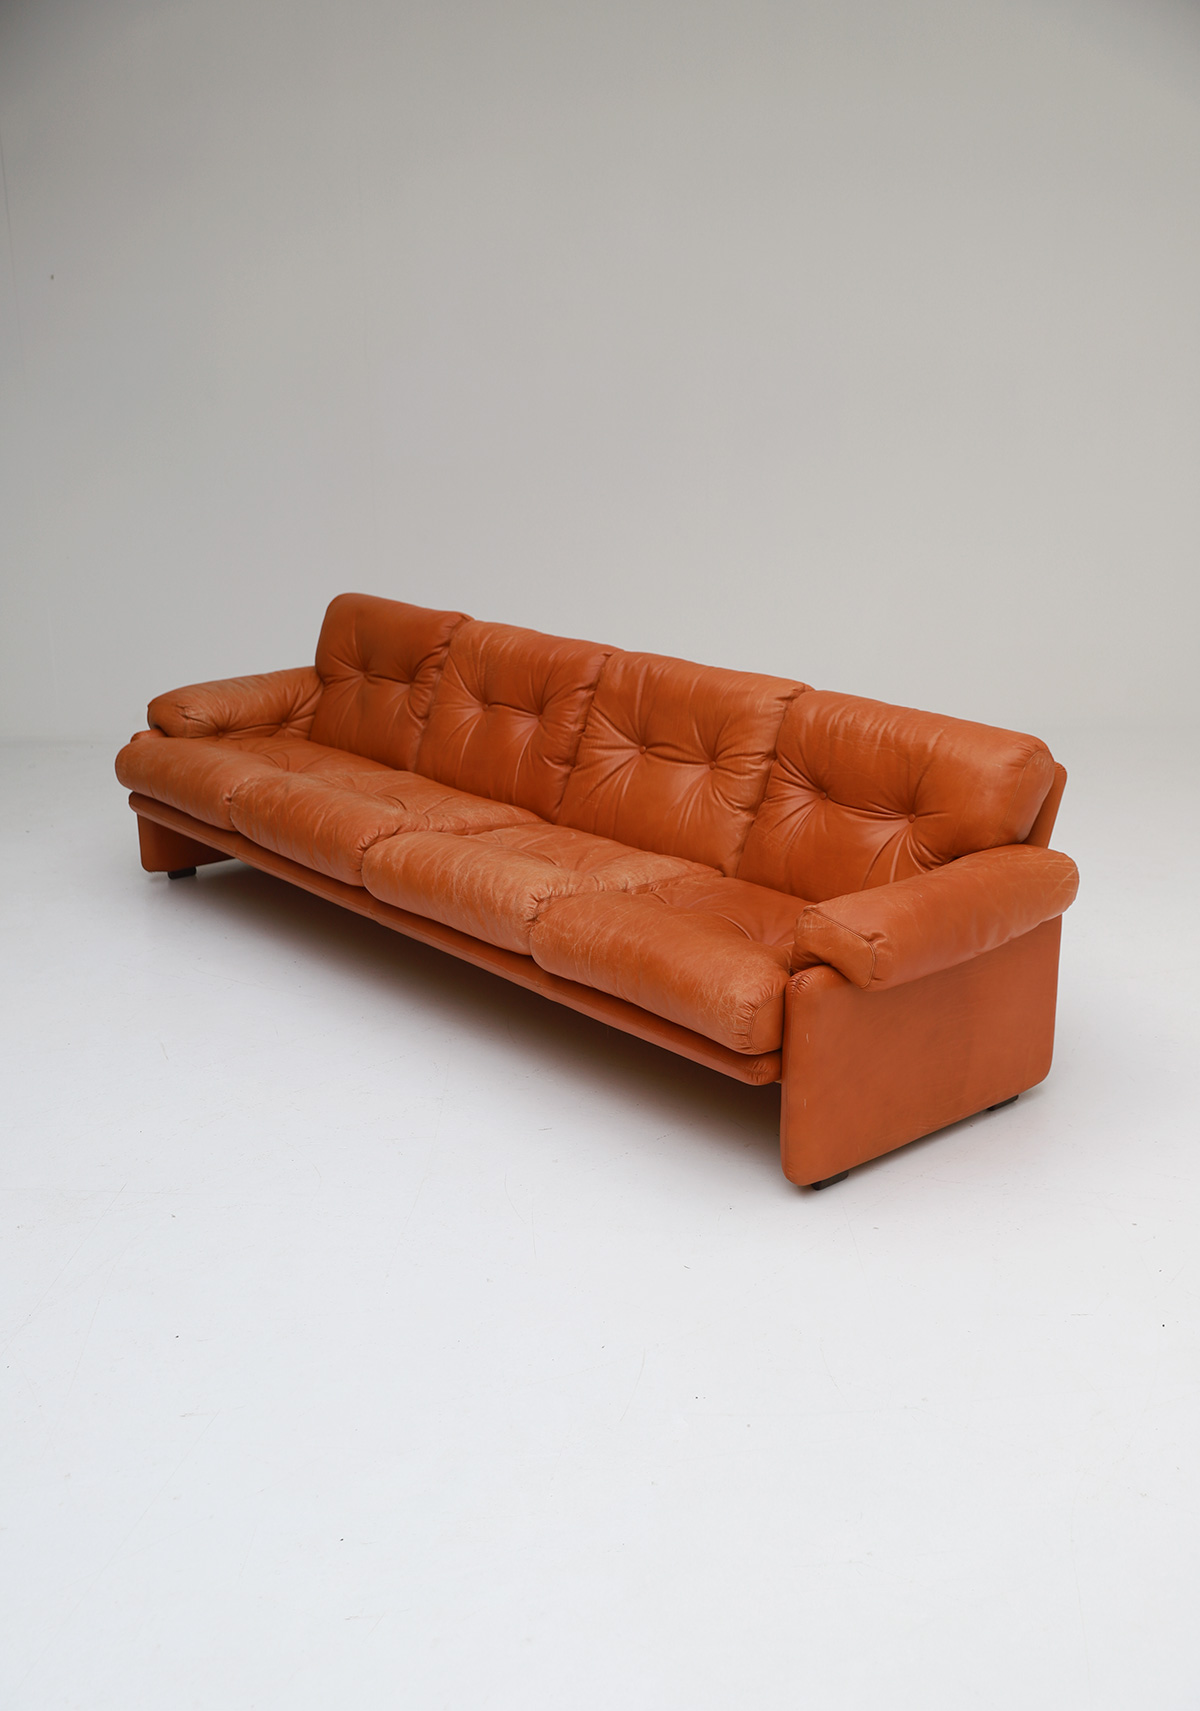 Tobia Scarpa 4 seat Cognac Leather Sofa B&B Italiaimage 4